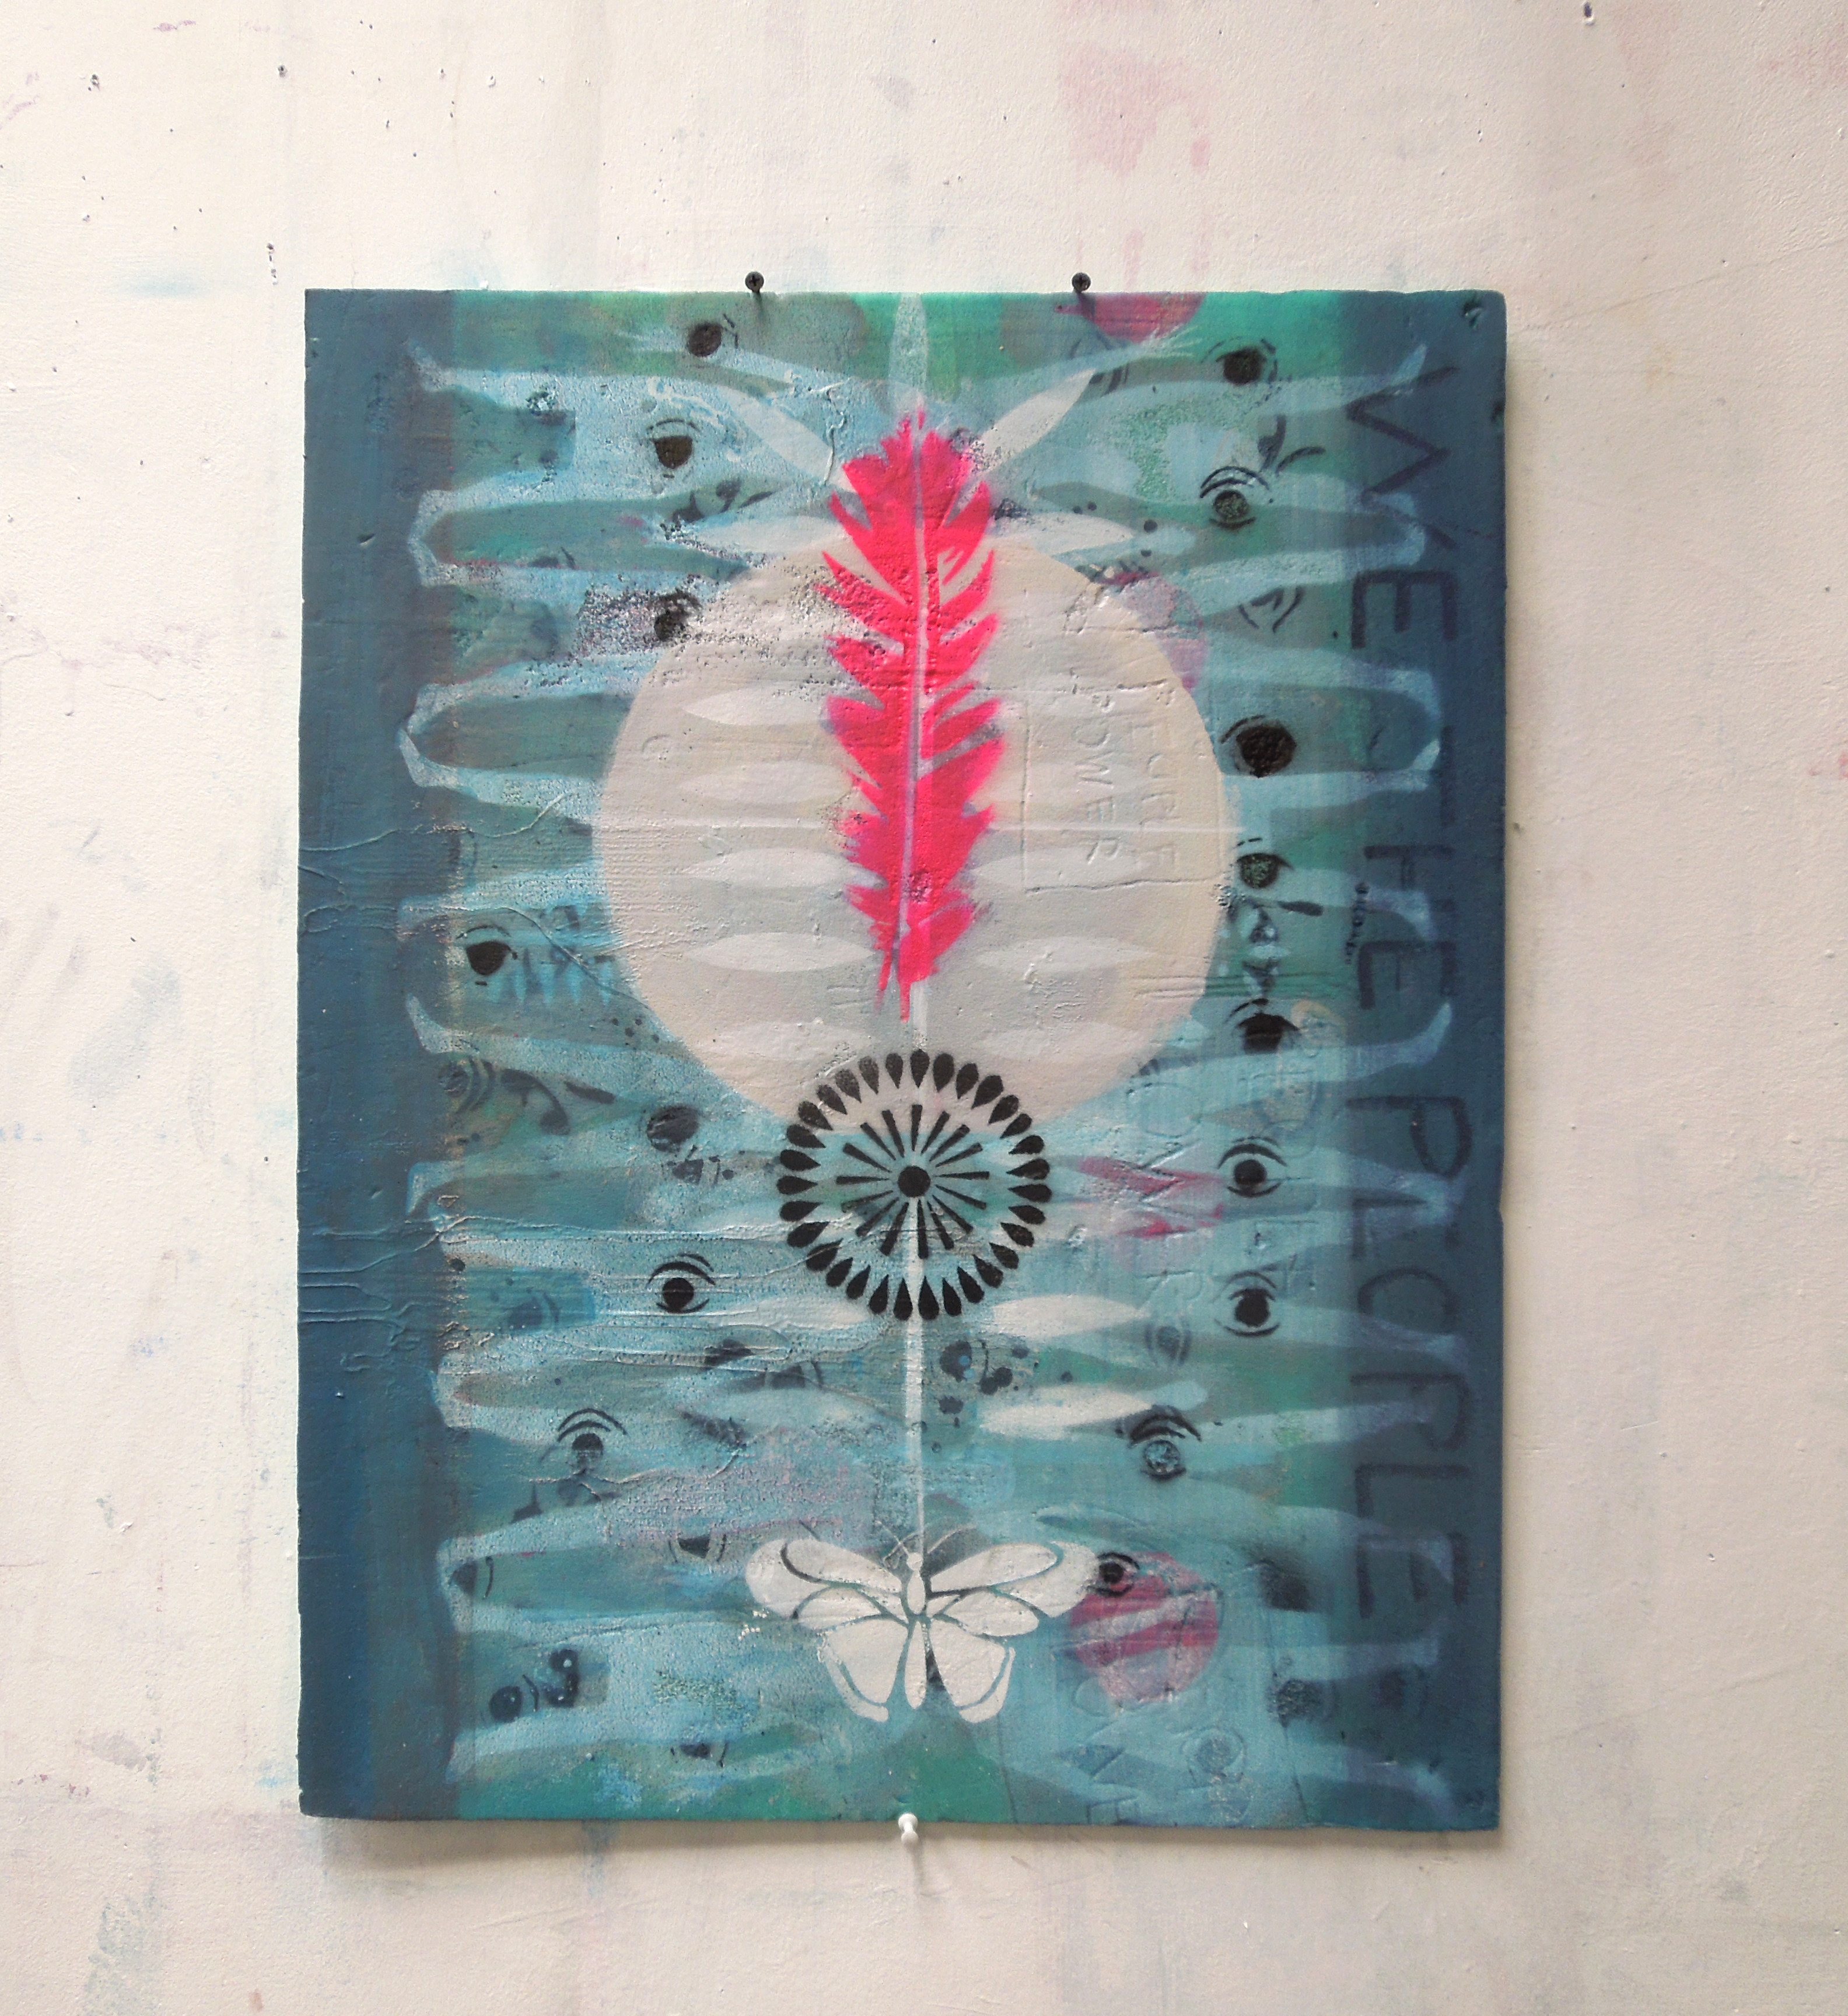 White butterfly, pink feather (62x49cm)